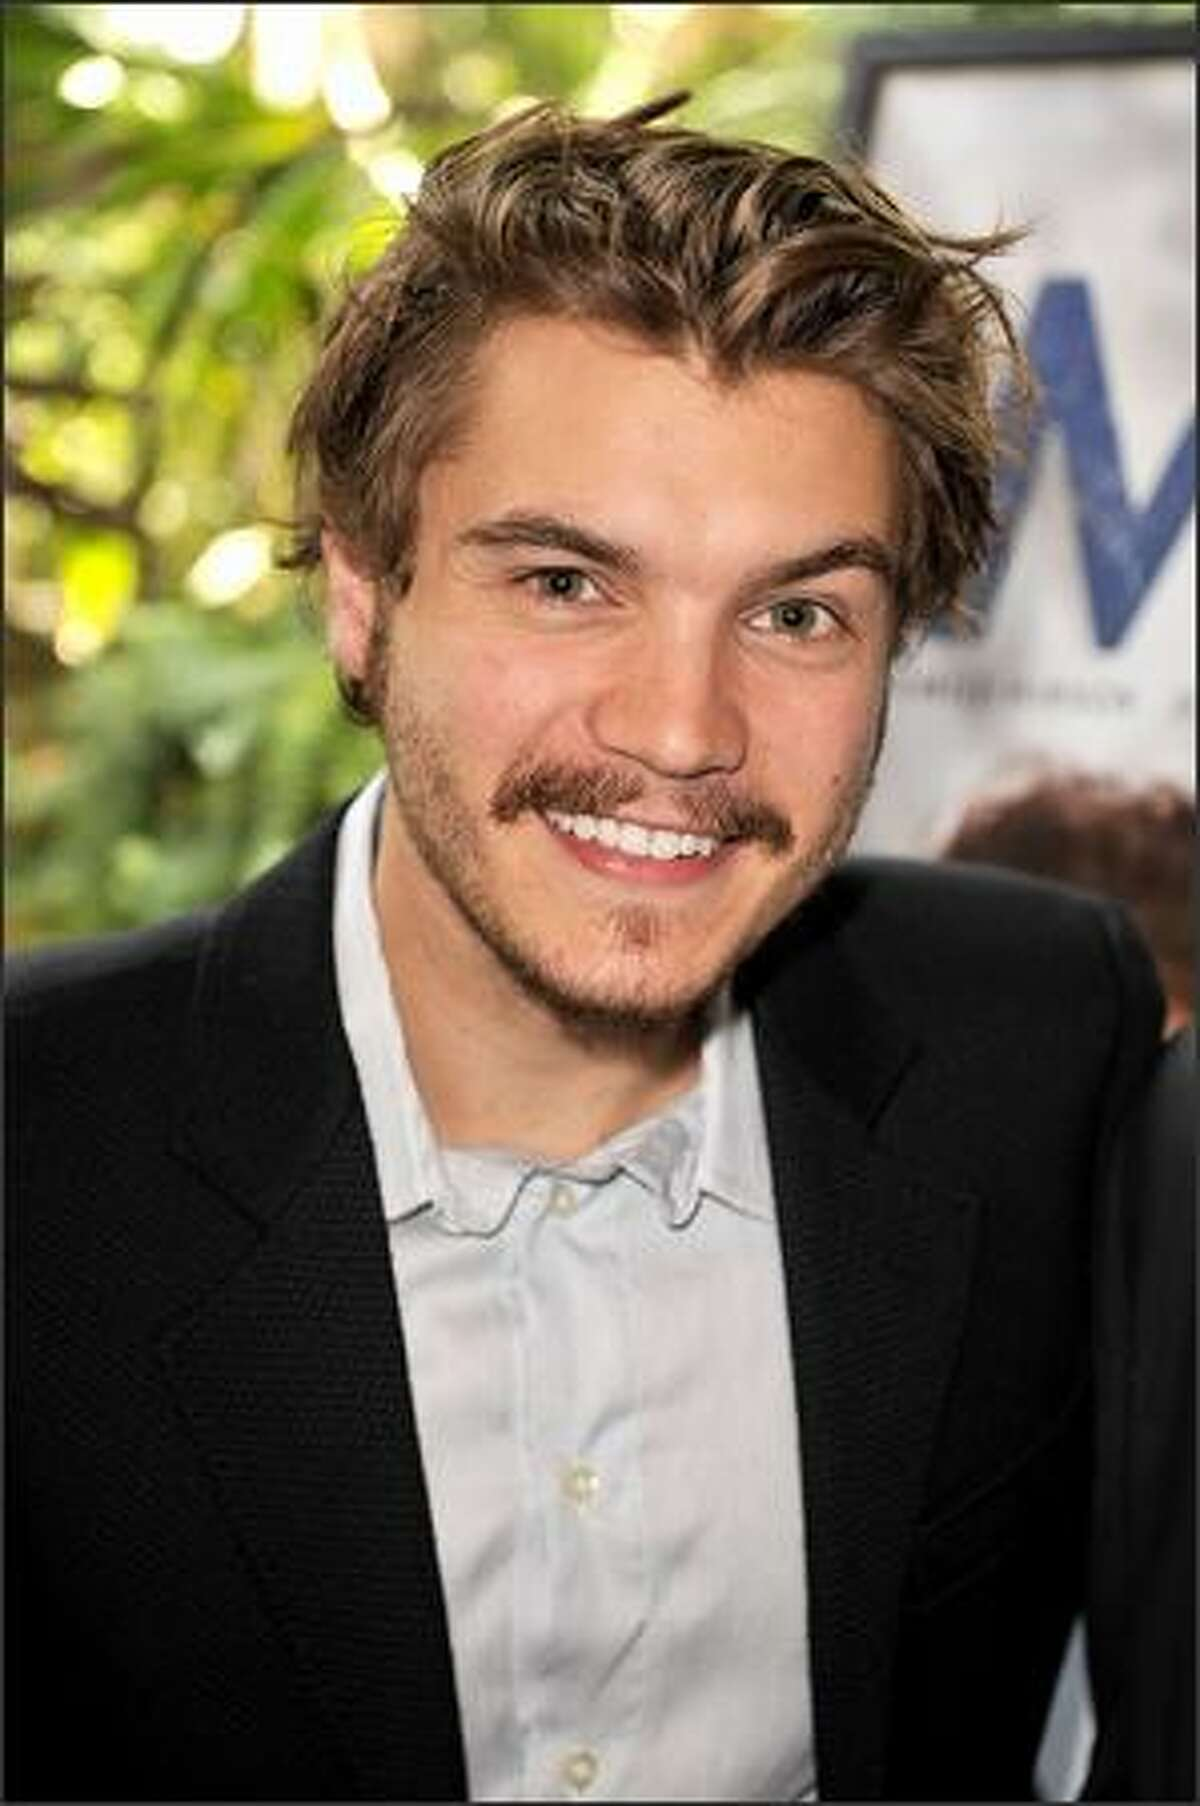 Actor Emile Hirsch arrives at the AFI Awards 2008 held at the Four Seasons Hotel in Los Angeles on Friday.